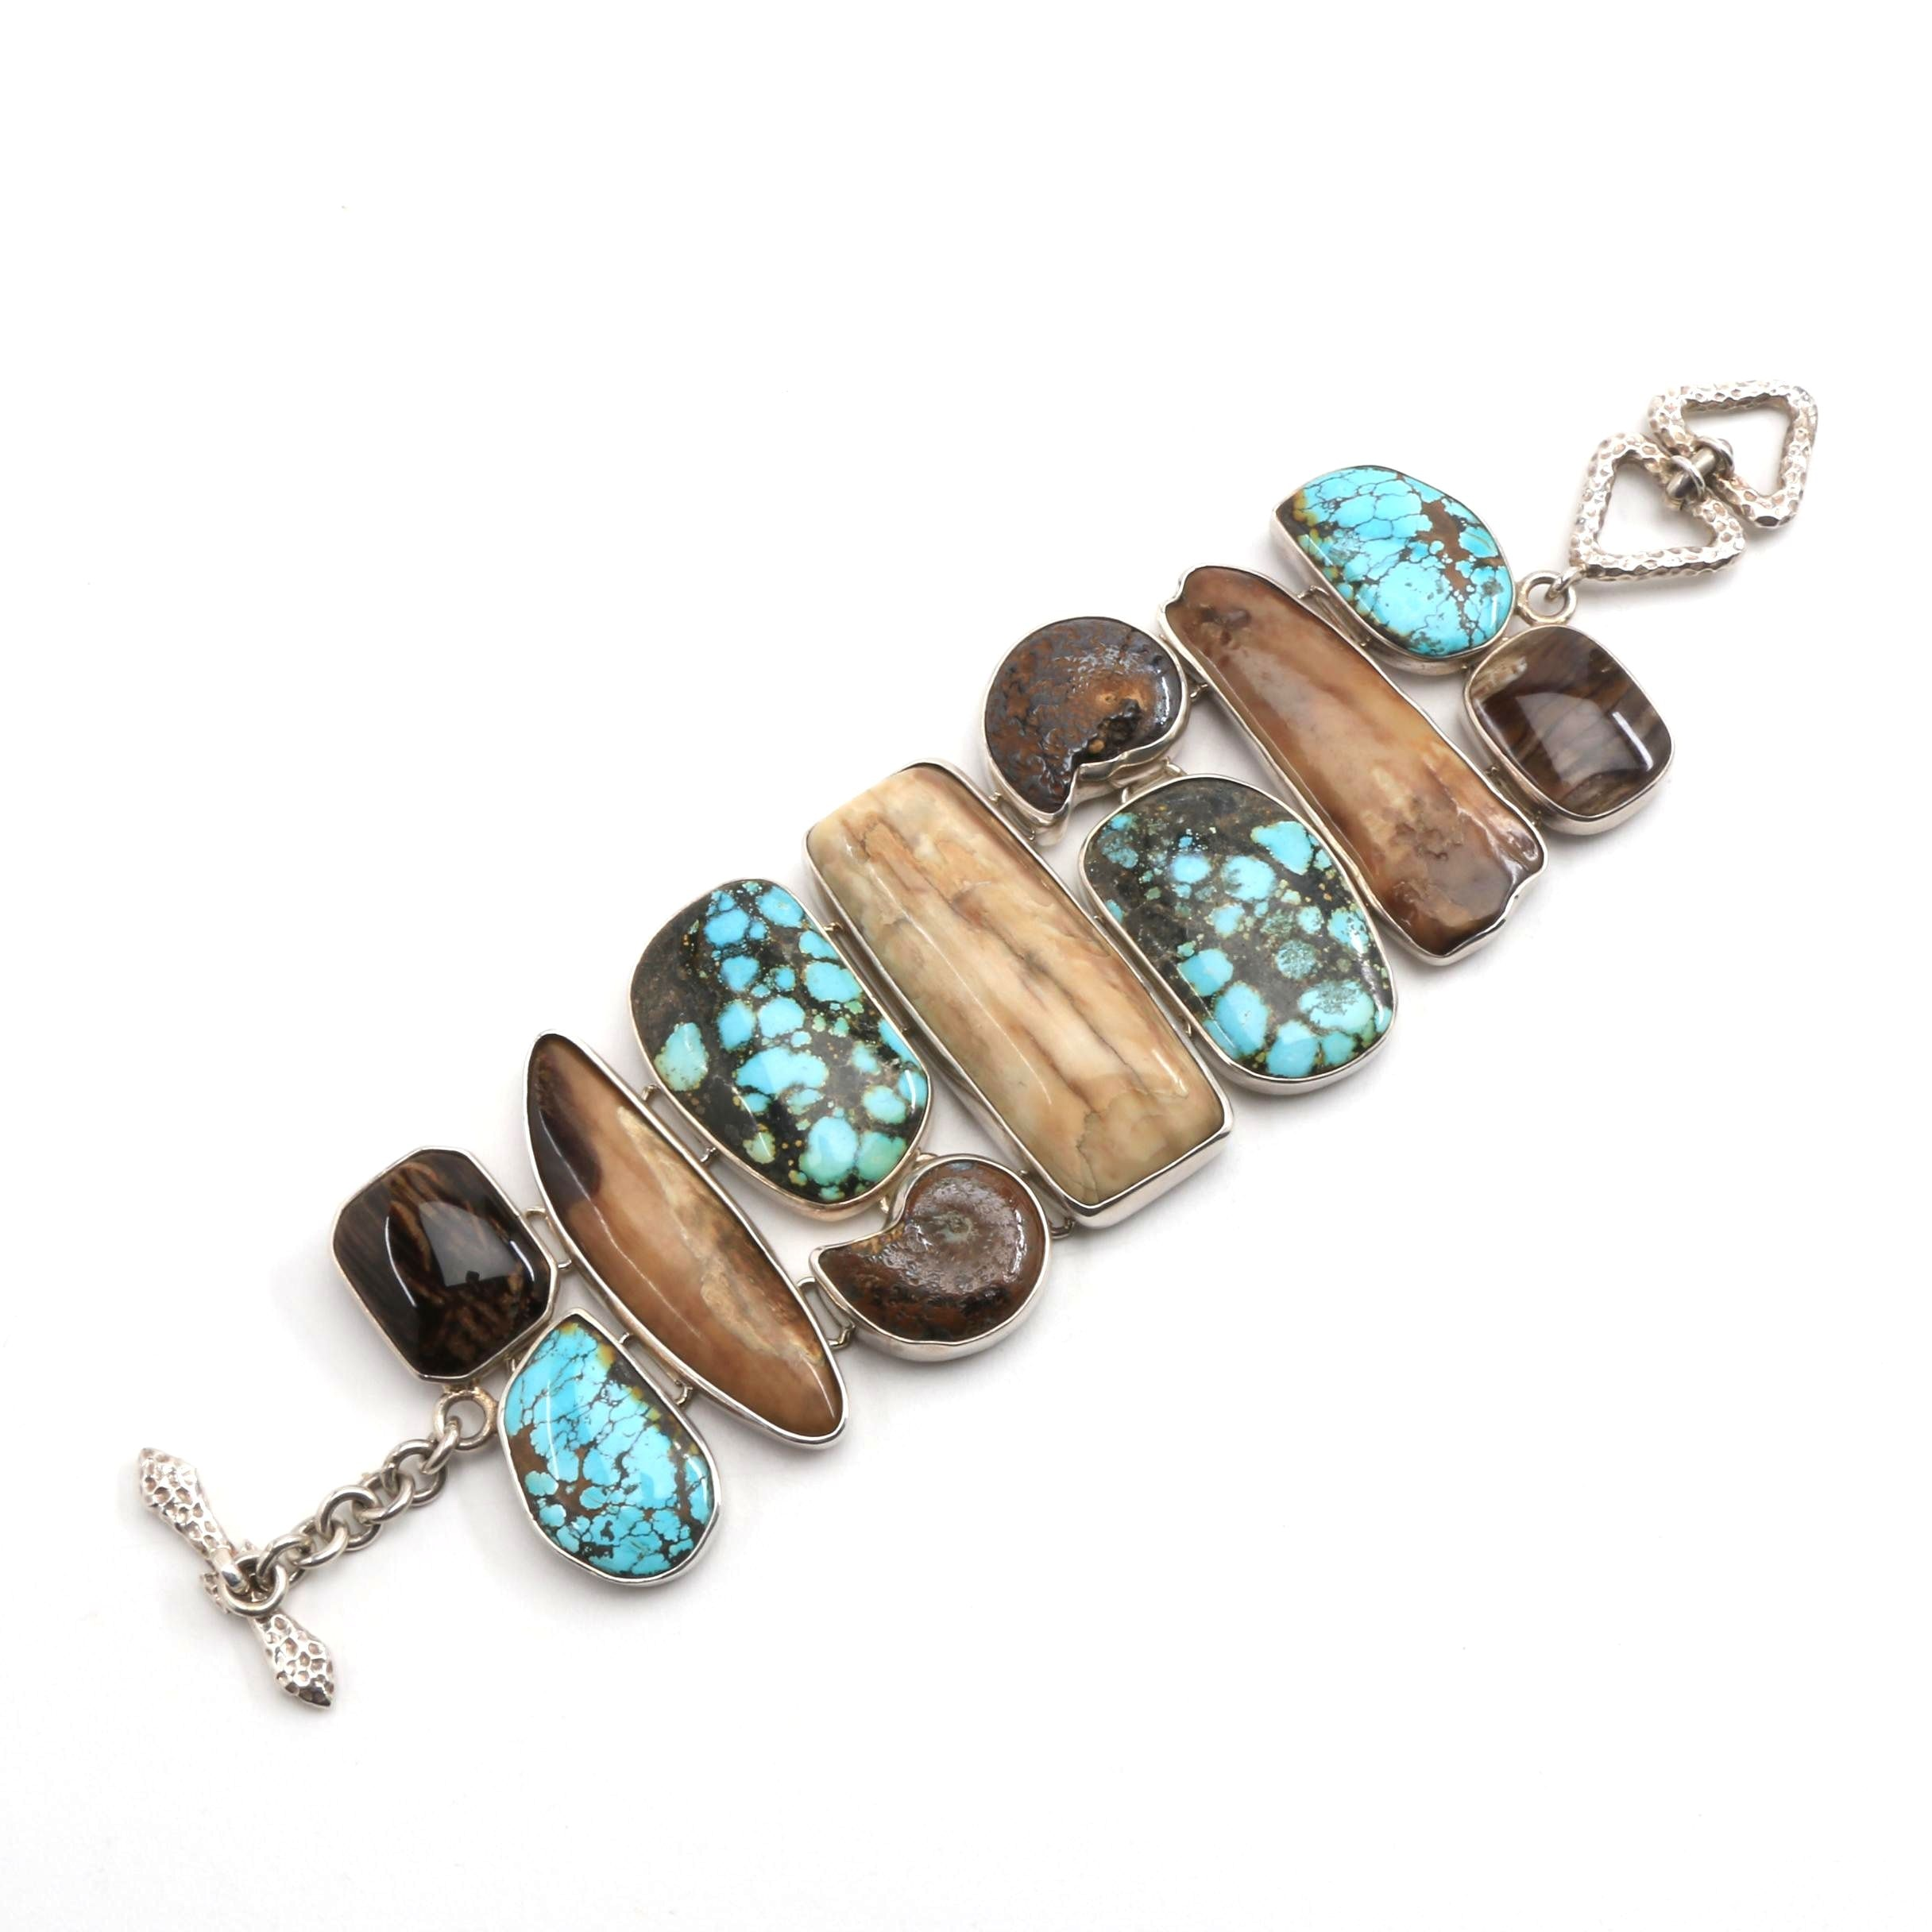 Wide Turquoise, Wood Horn and Ammonoid Fossil Bracelet in Sterling Silver Mount